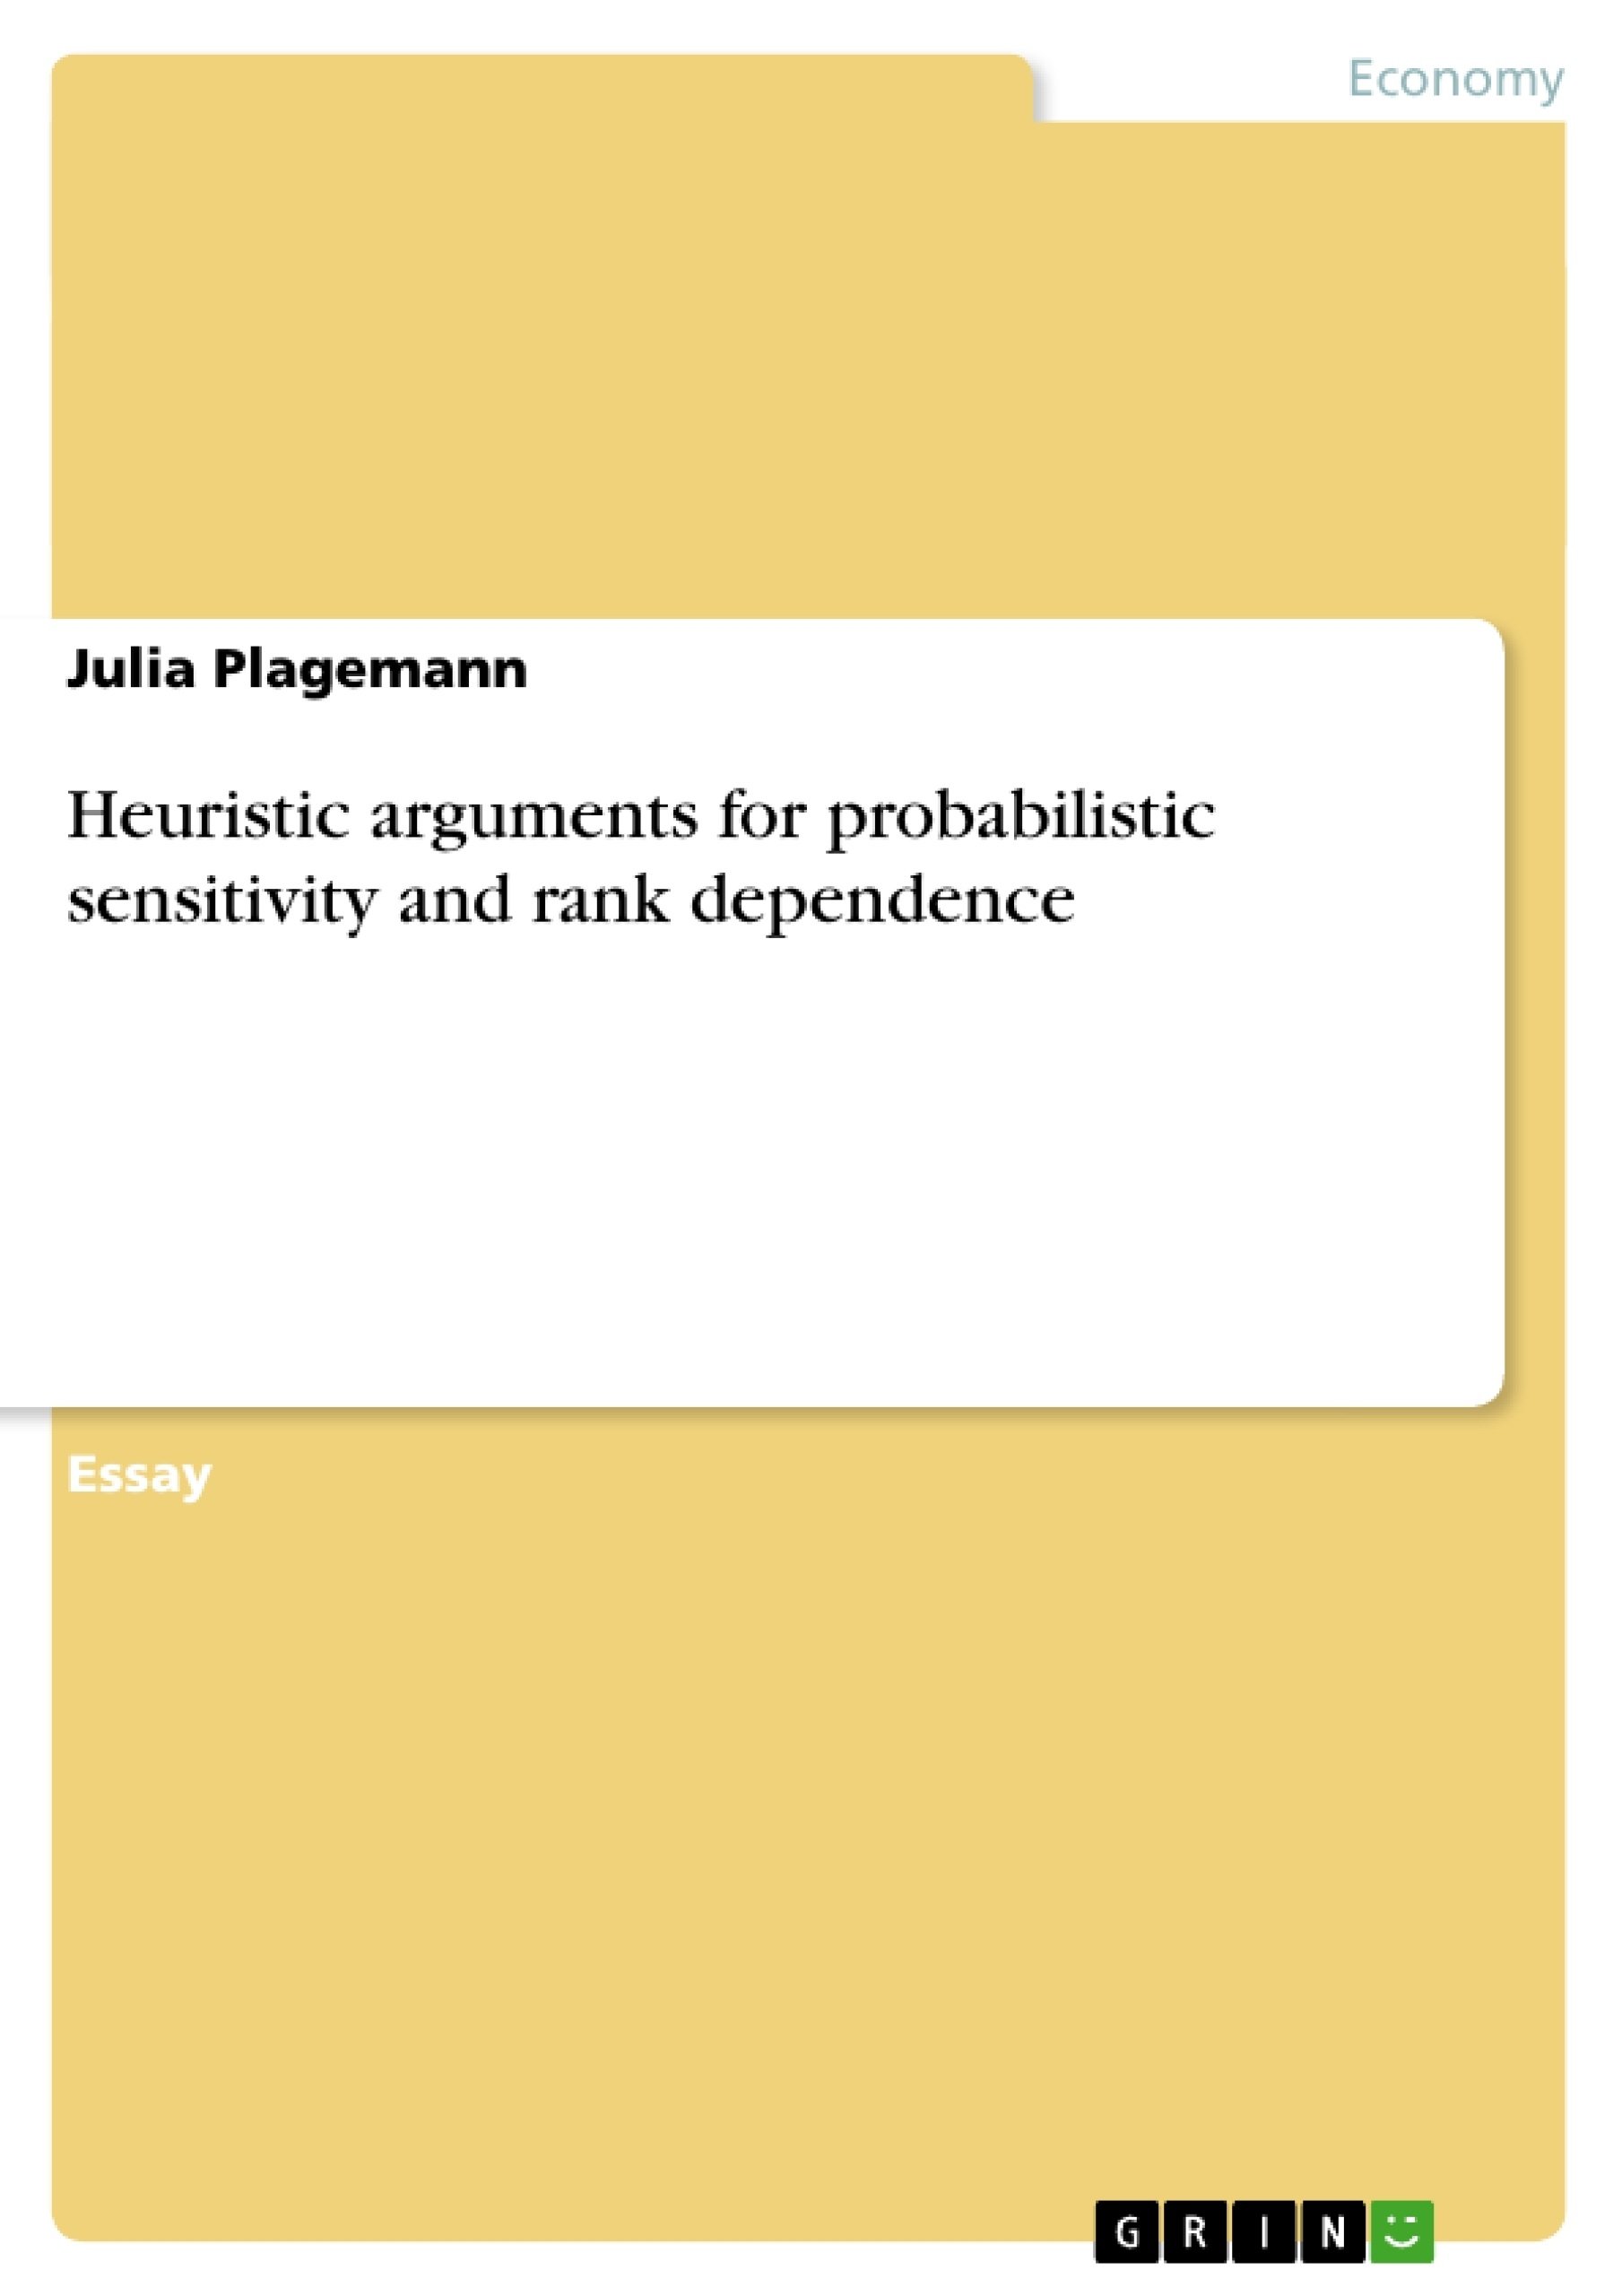 Title: Heuristic arguments for probabilistic sensitivity and rank dependence